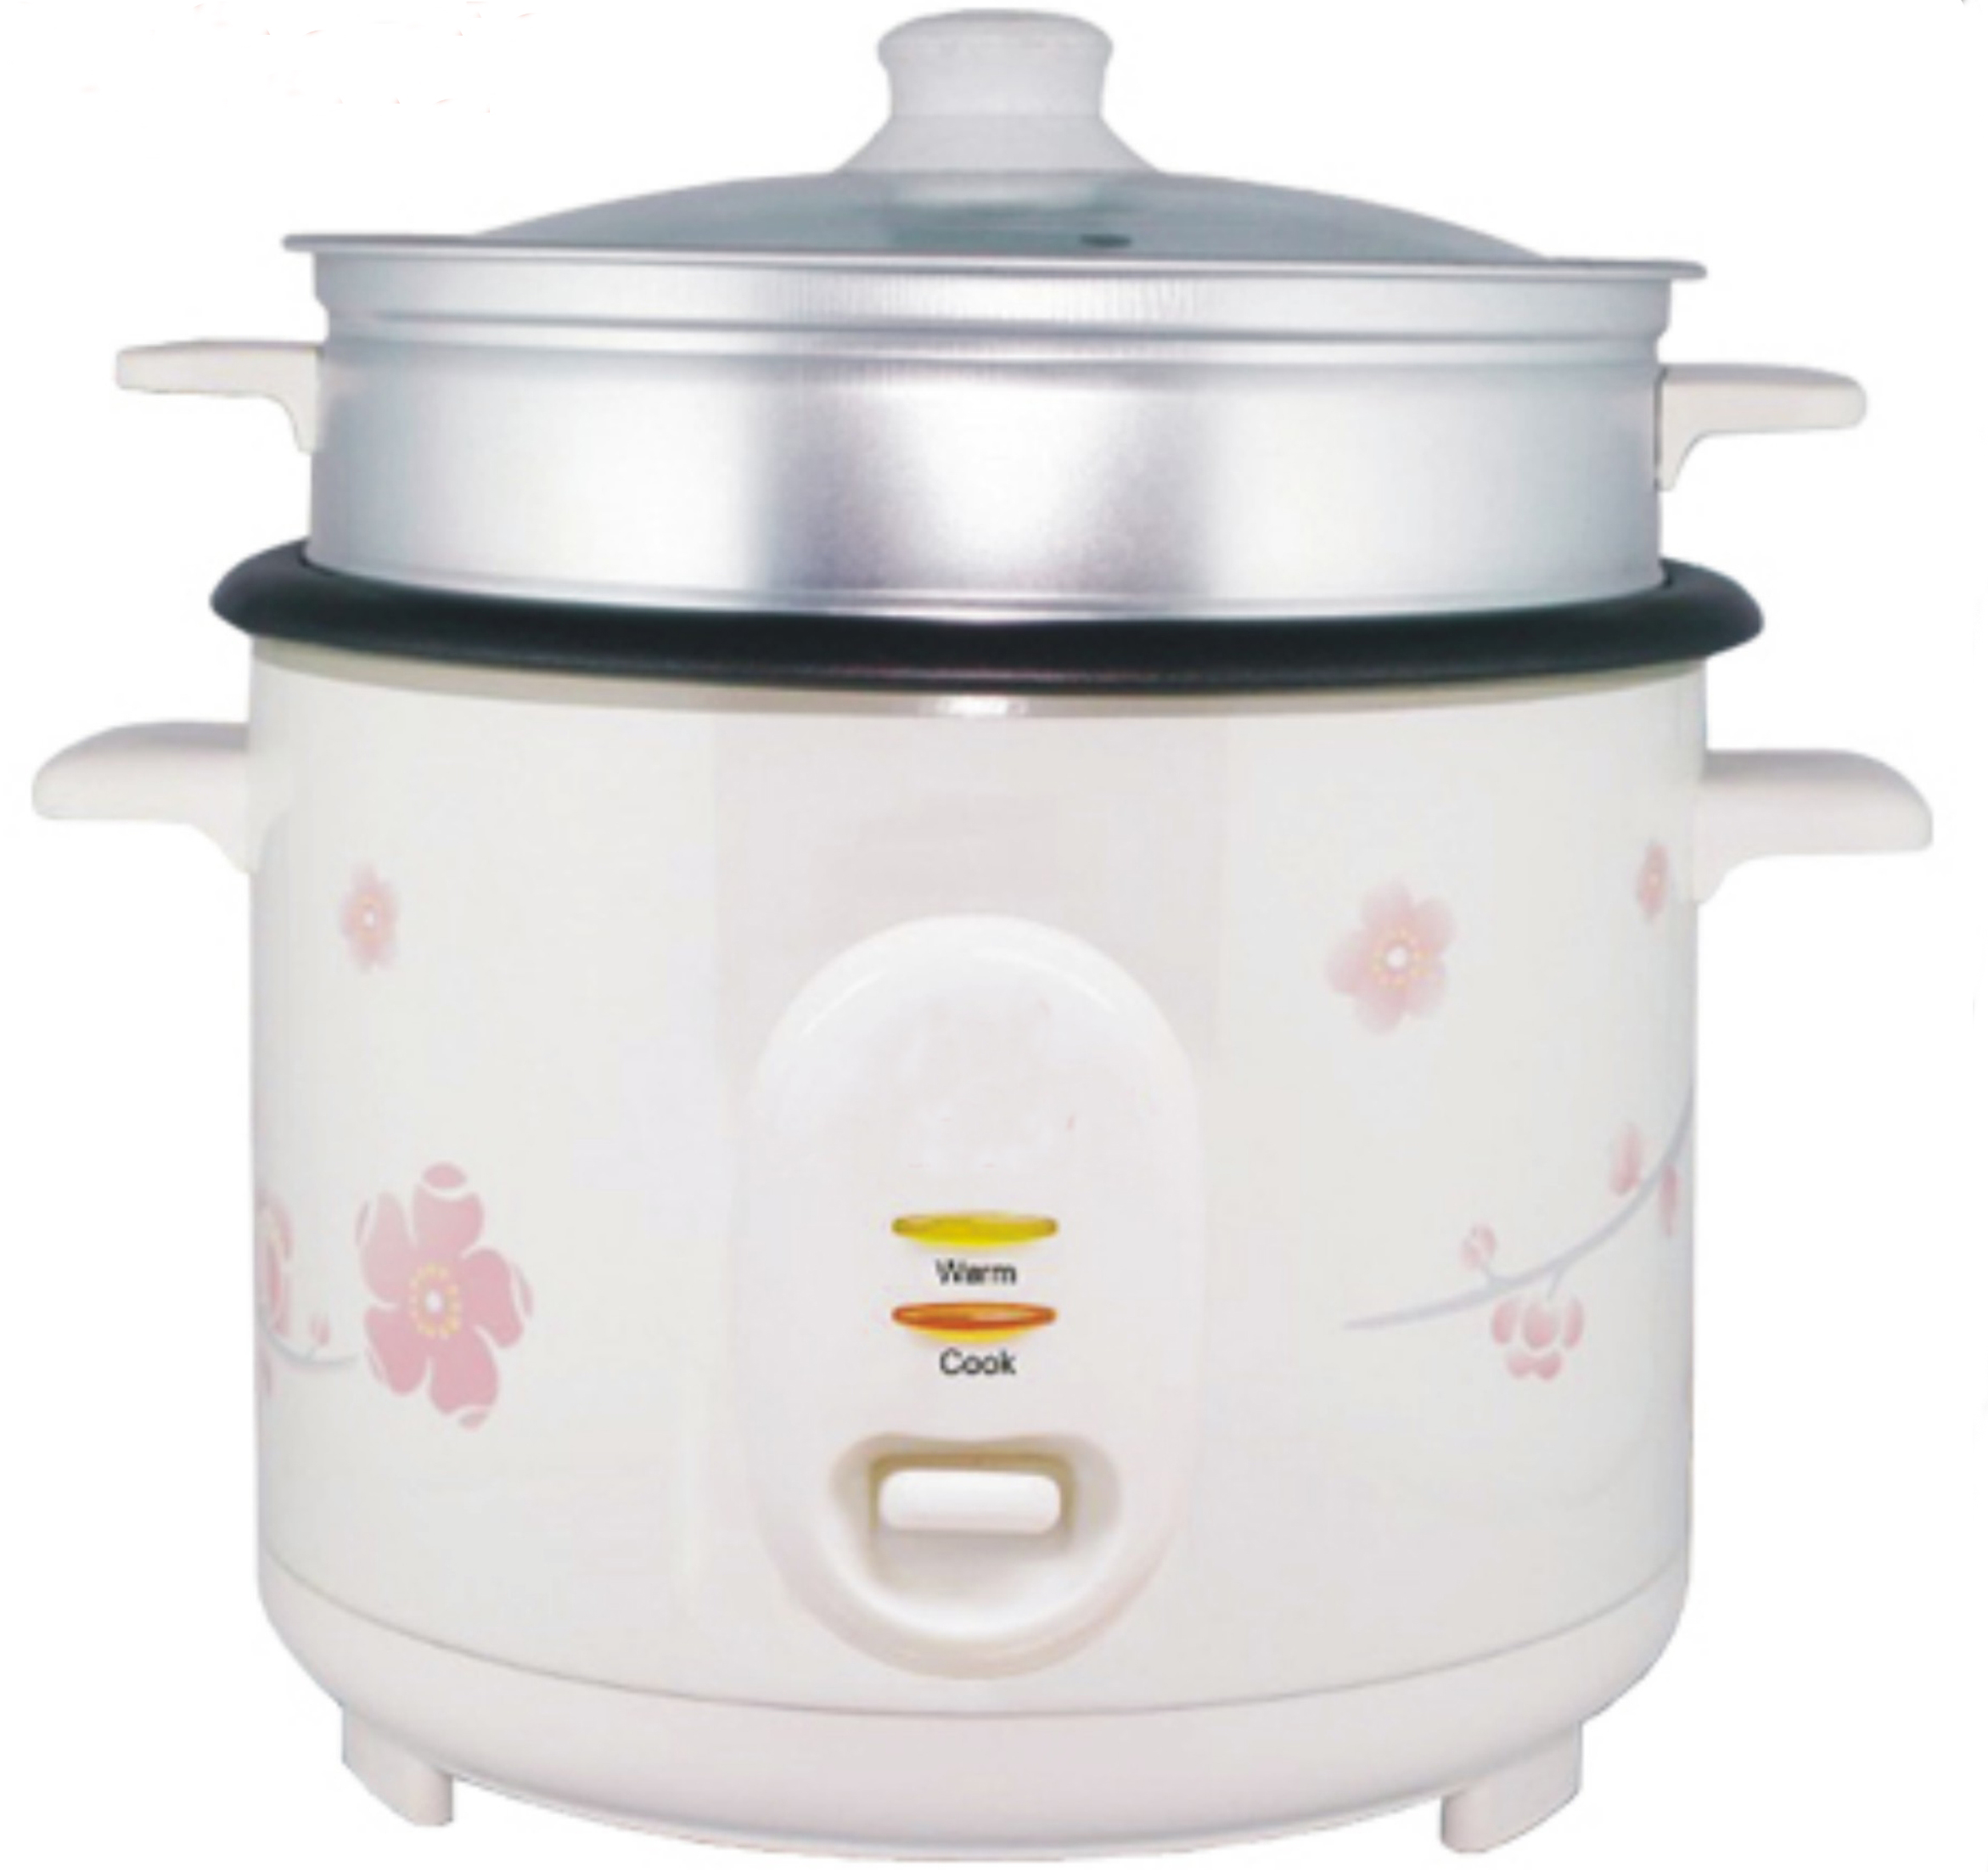 Straight type rice cooker TPZB30-01